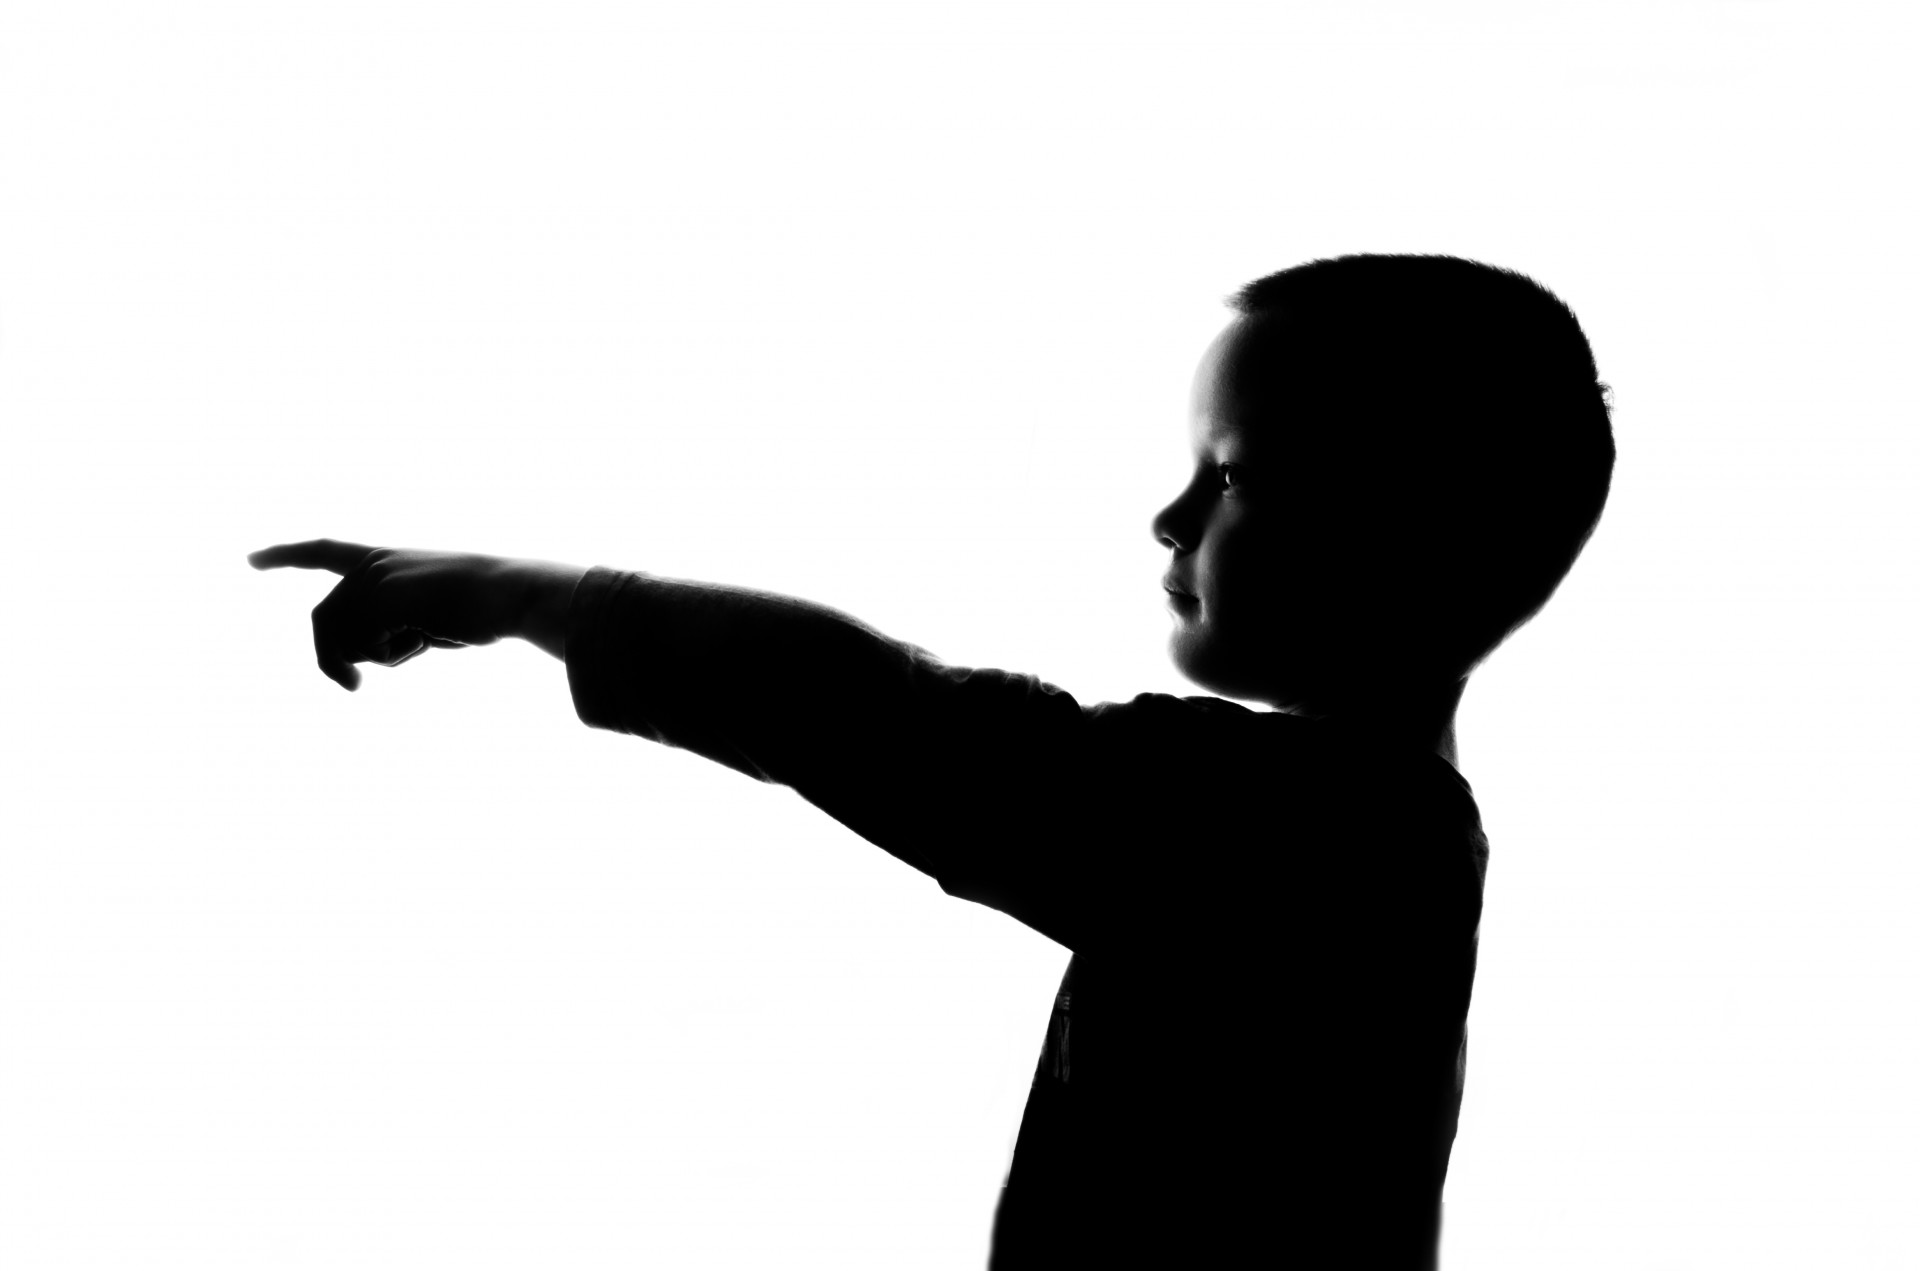 silhouette-boy-pointing-finger